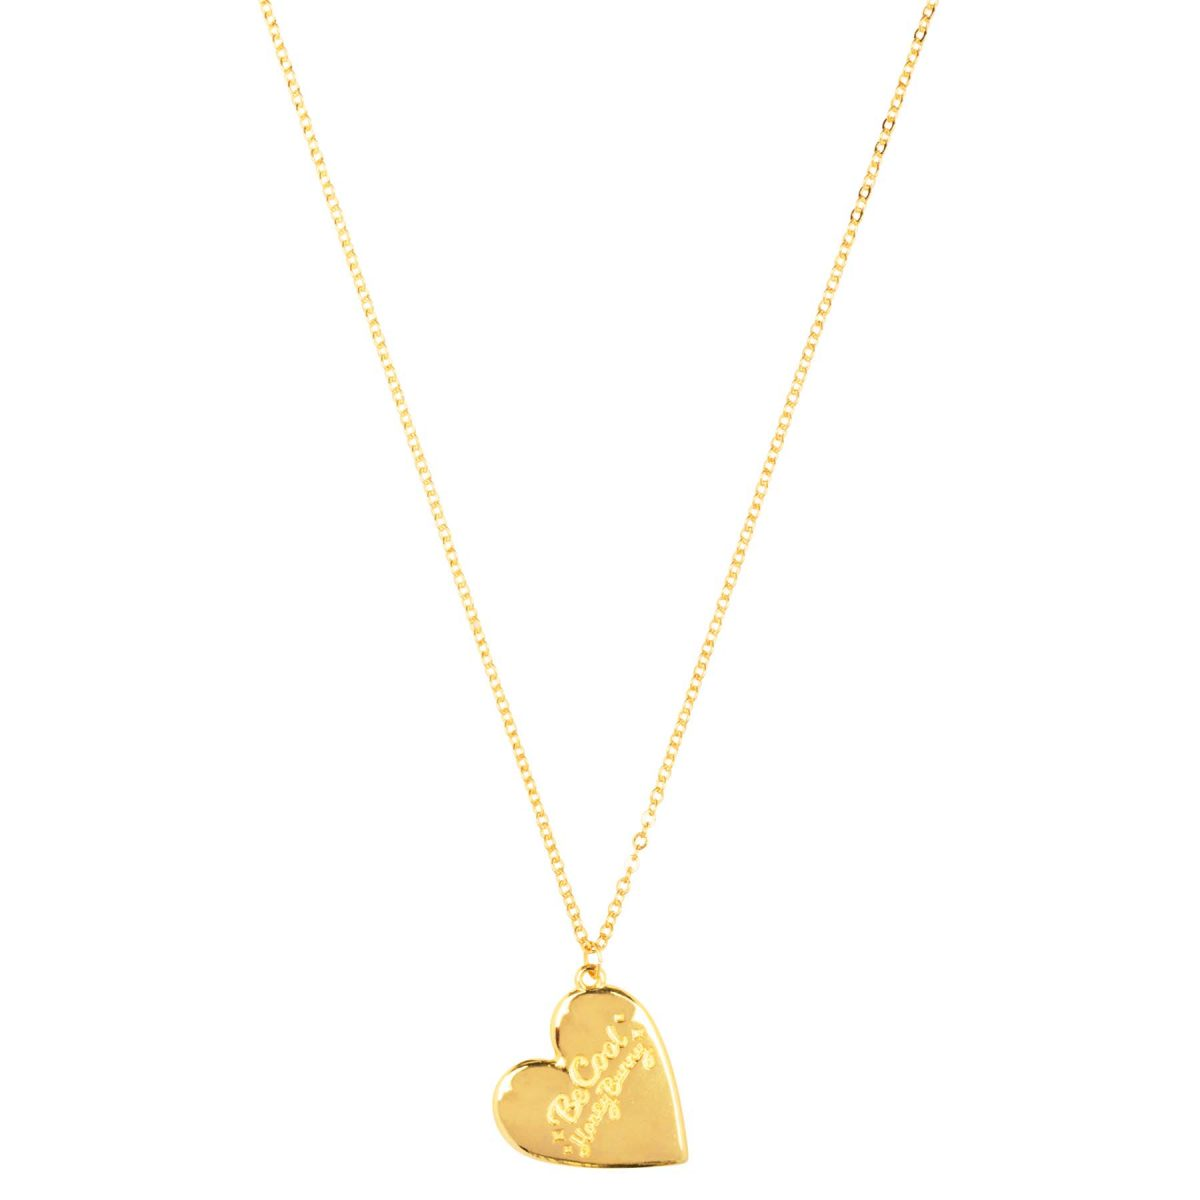 &anne necklace Be Cool Honey Bunny - 24k gold plated necklace